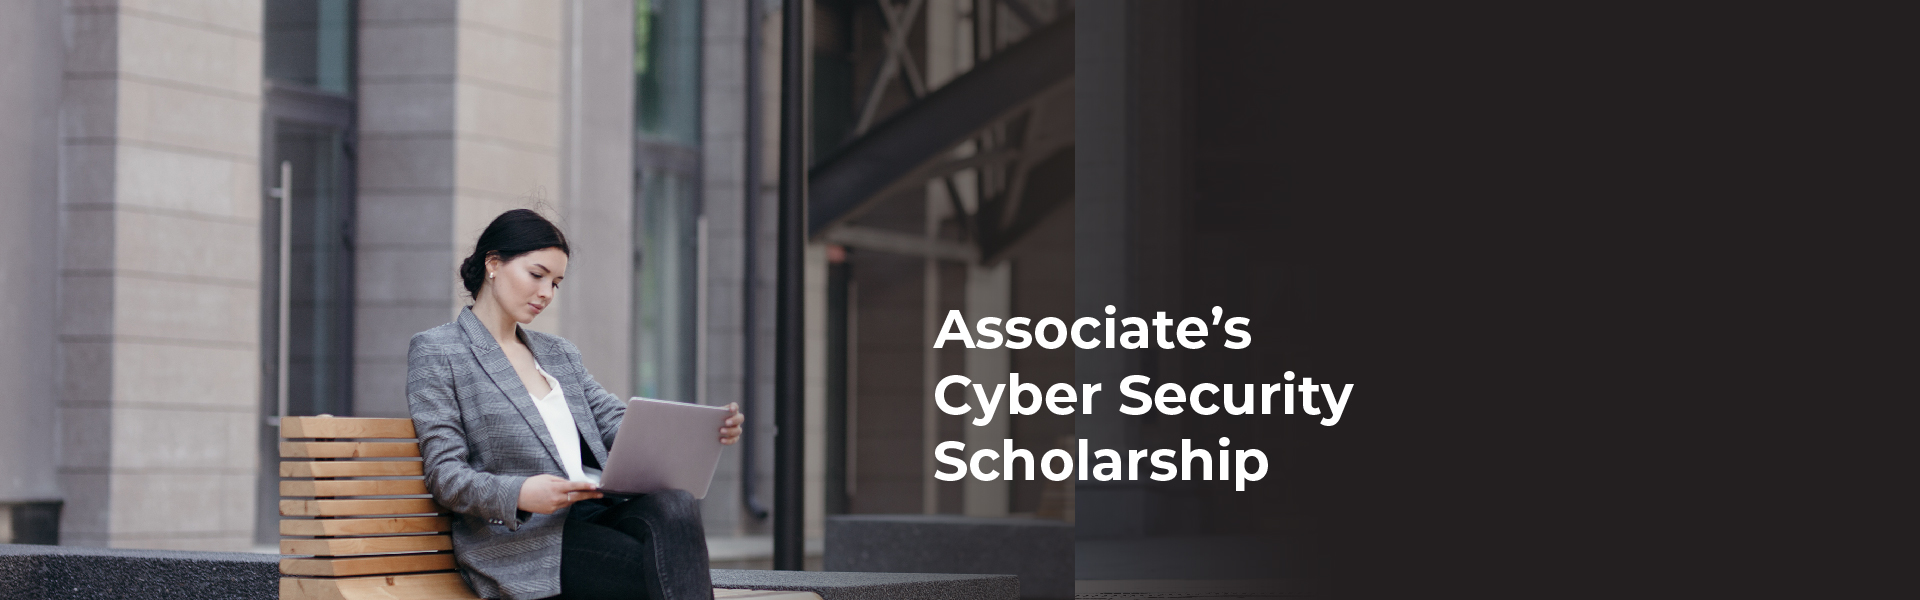 Associate's Cyber Security Scholarship